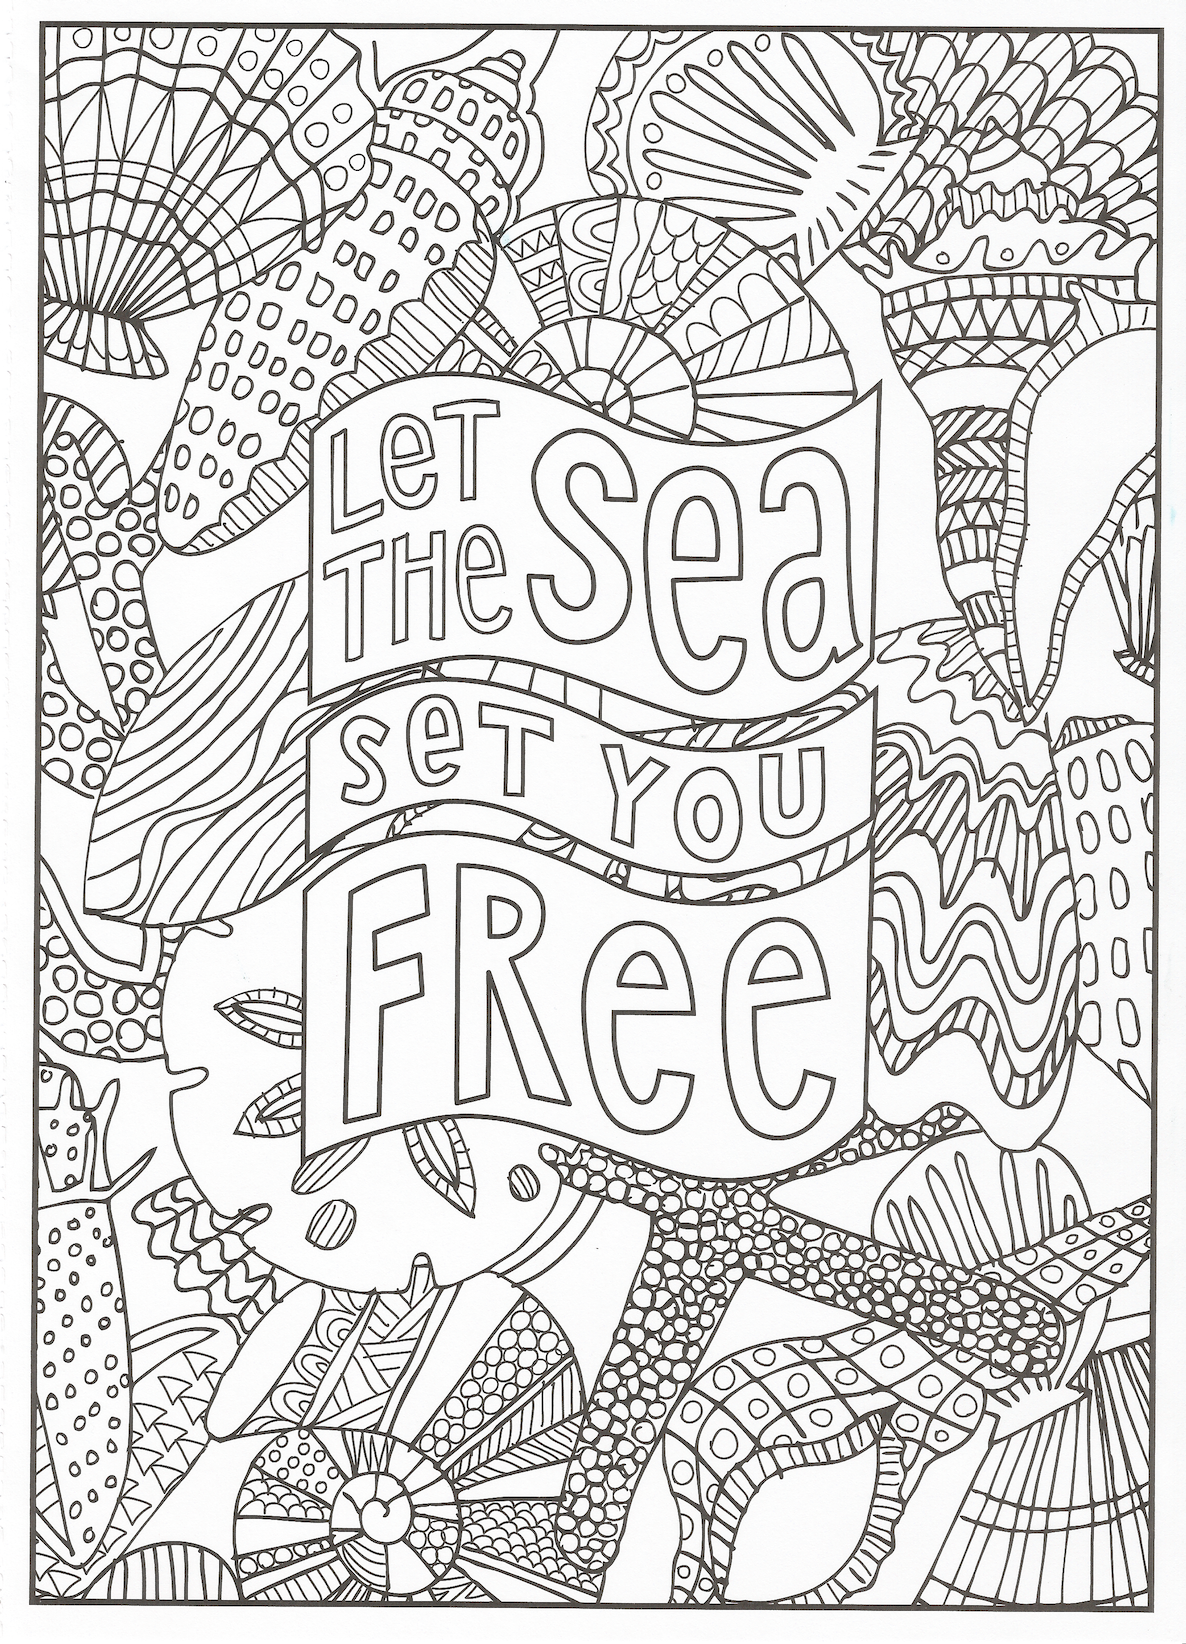 Timeless Creations Creative Quotes Coloring Page Let The Sea Words